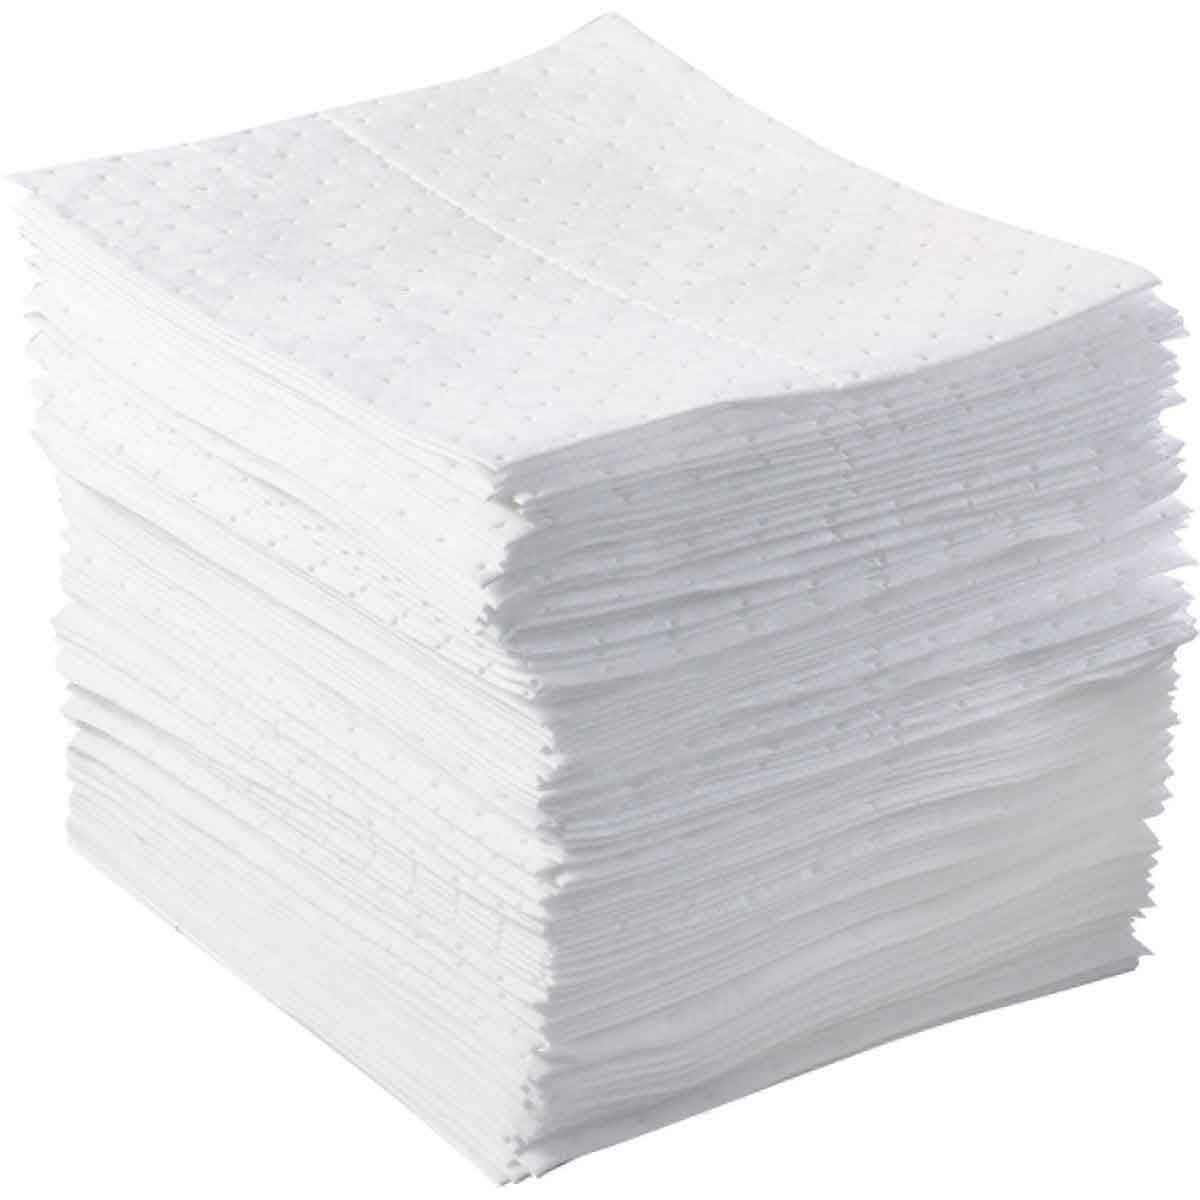 SPC® BPH100 BASIC Dimpled Heavyweight High-Linting Meltblown Chemical Absorbent Pad, 17 in L x 15 in W, 20 gal Absorption, Polypropylene